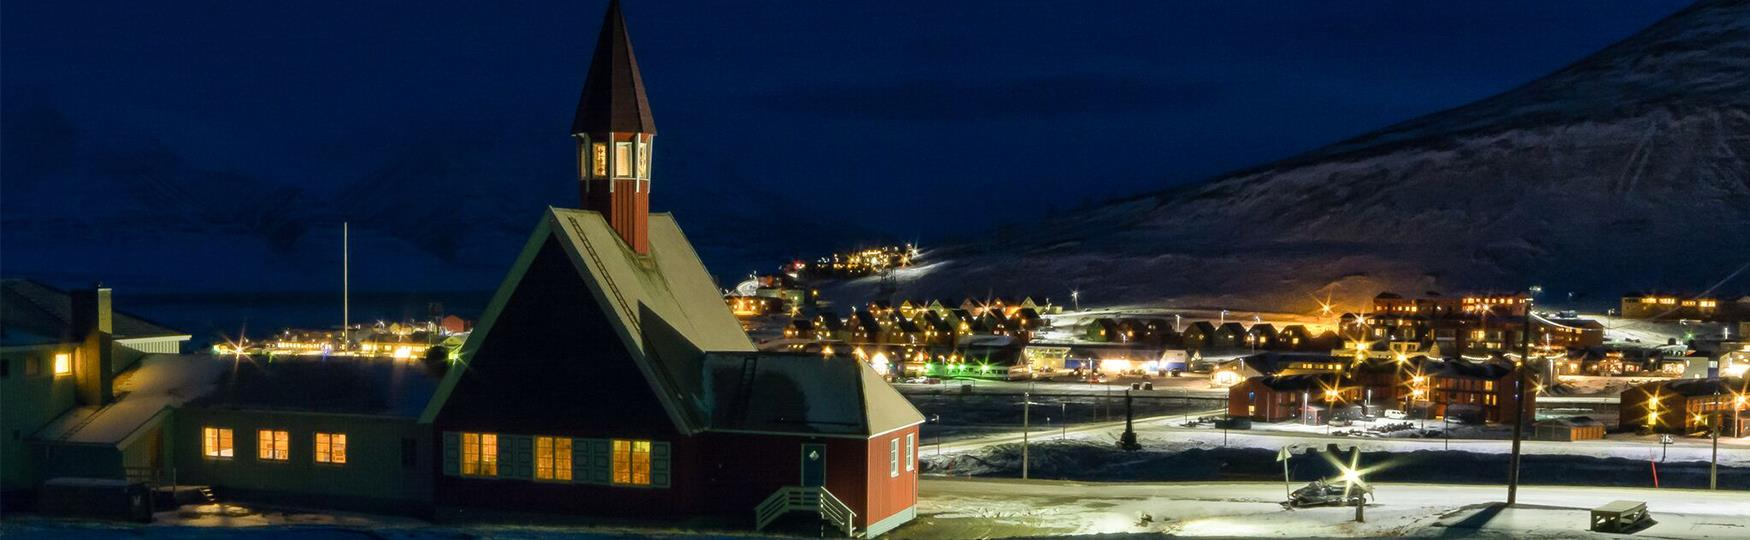 Welcome to Christmas in Longyearbyen